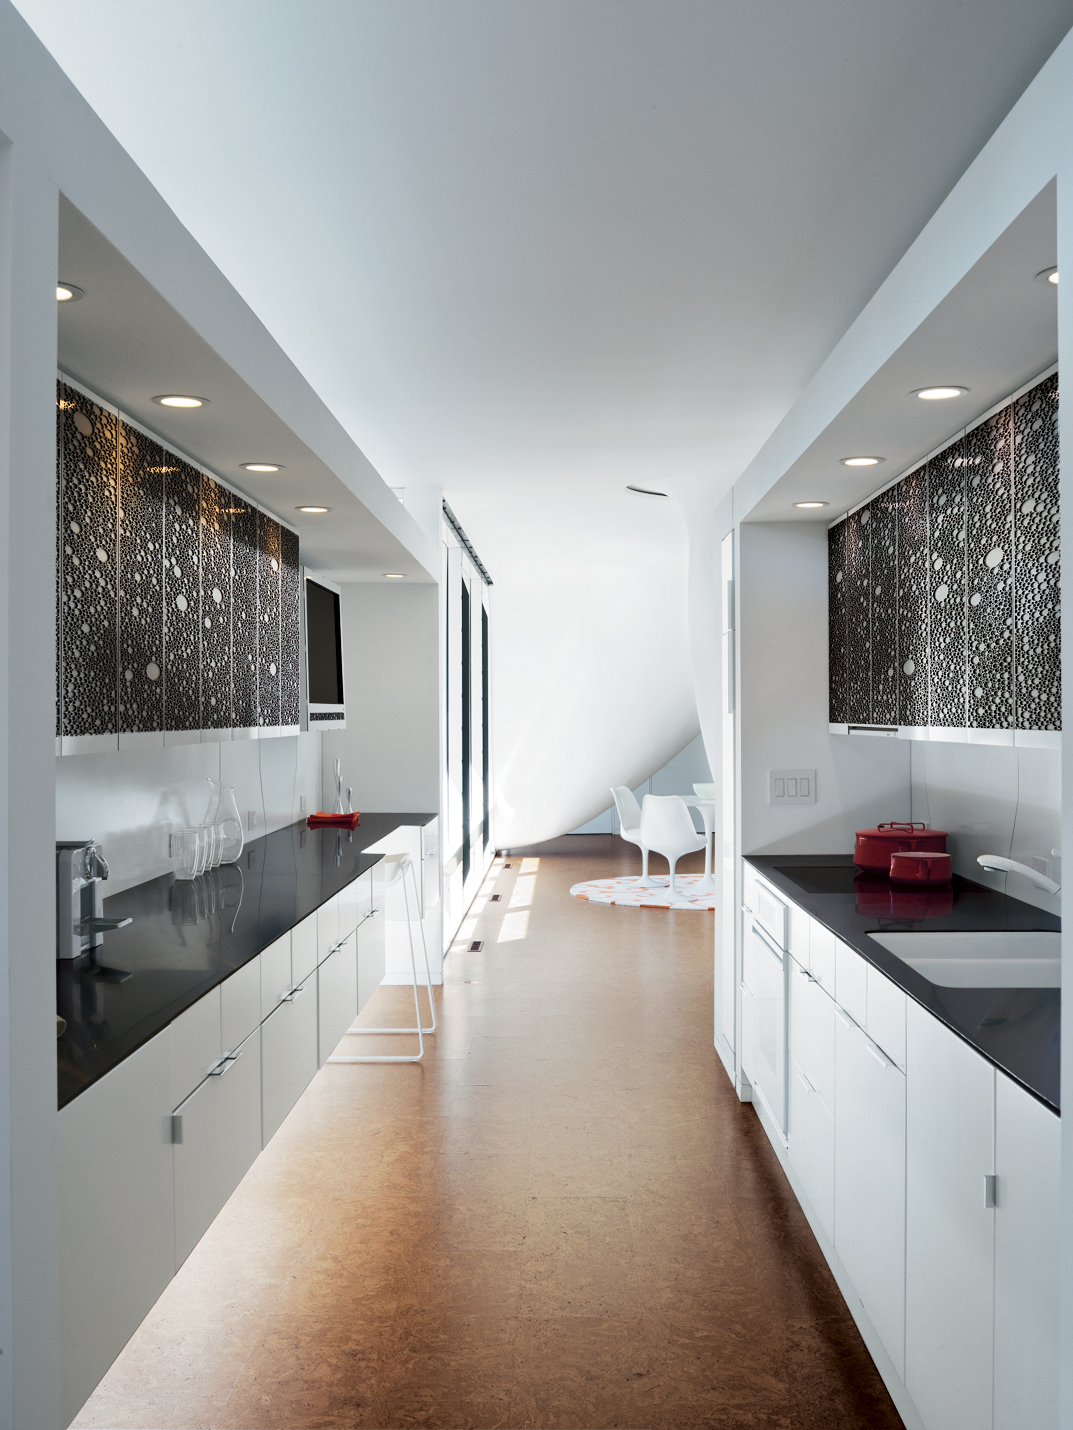 The kitchen is a long sleek space.